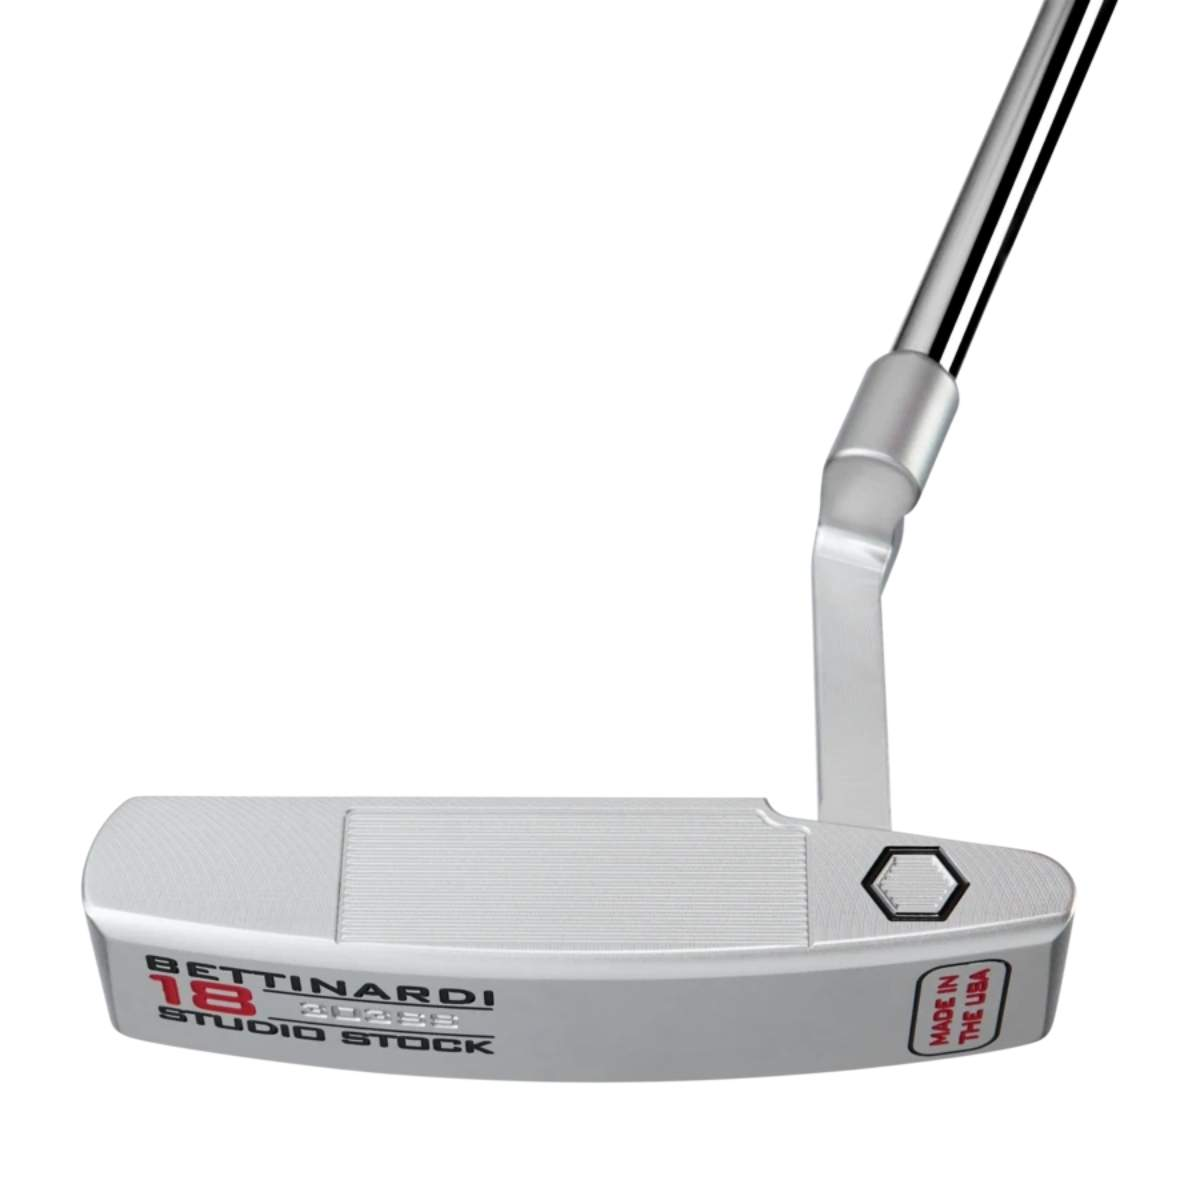 Bettinardi Studio Stock 18 Putter